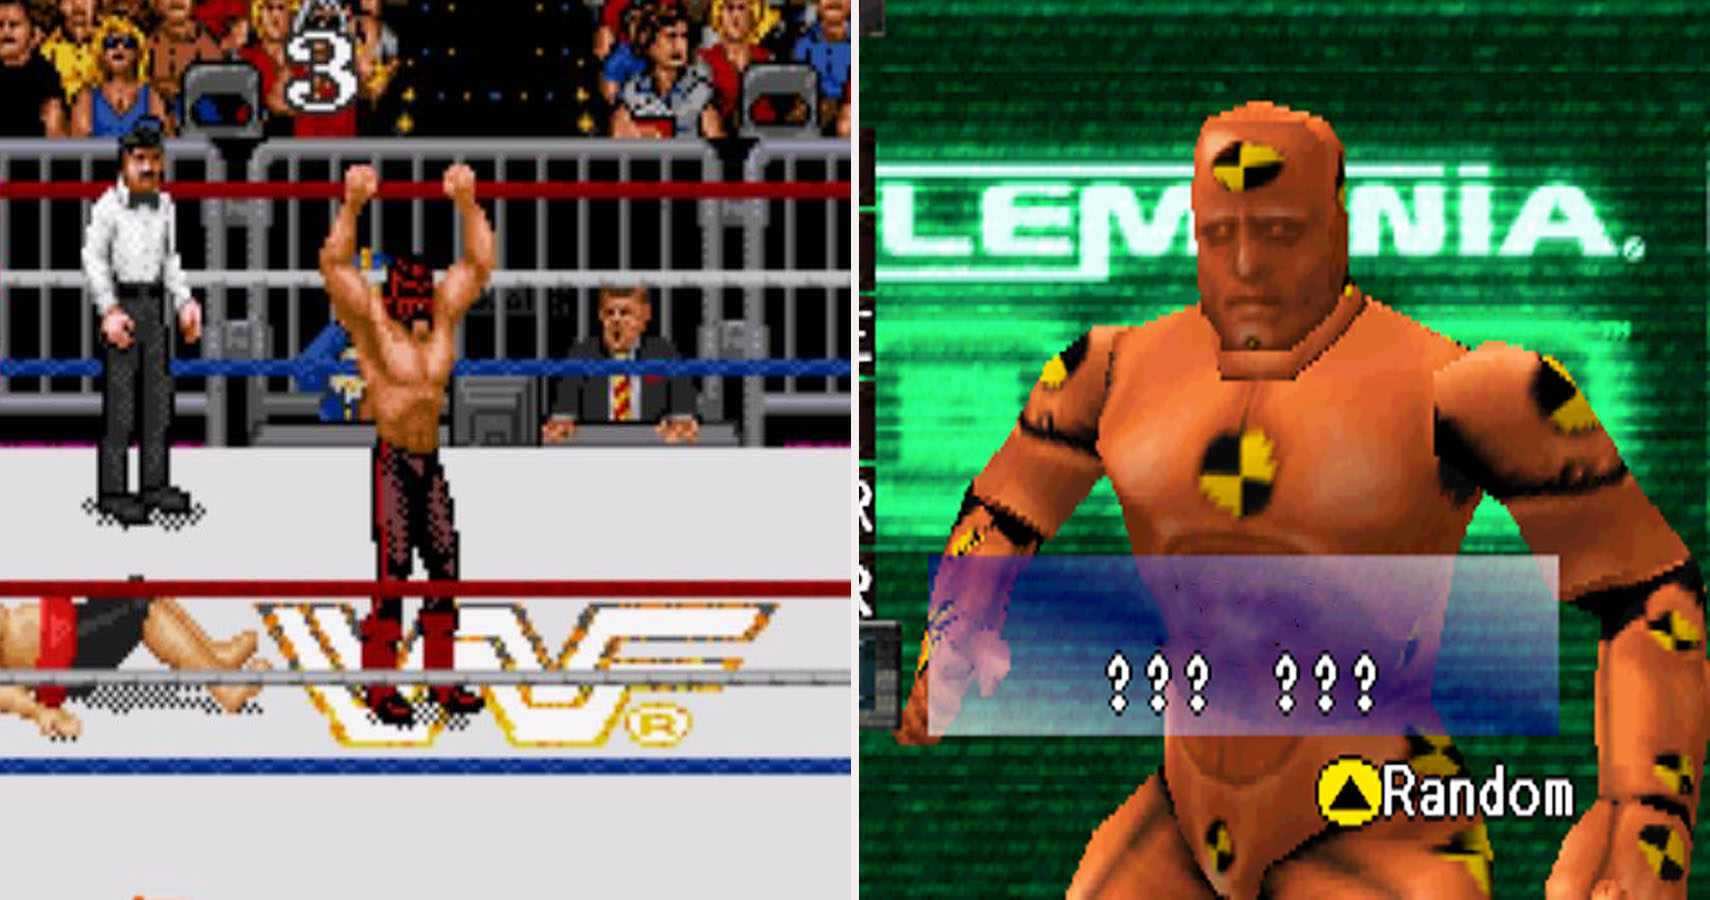 the absolute worst characters in wrestling games